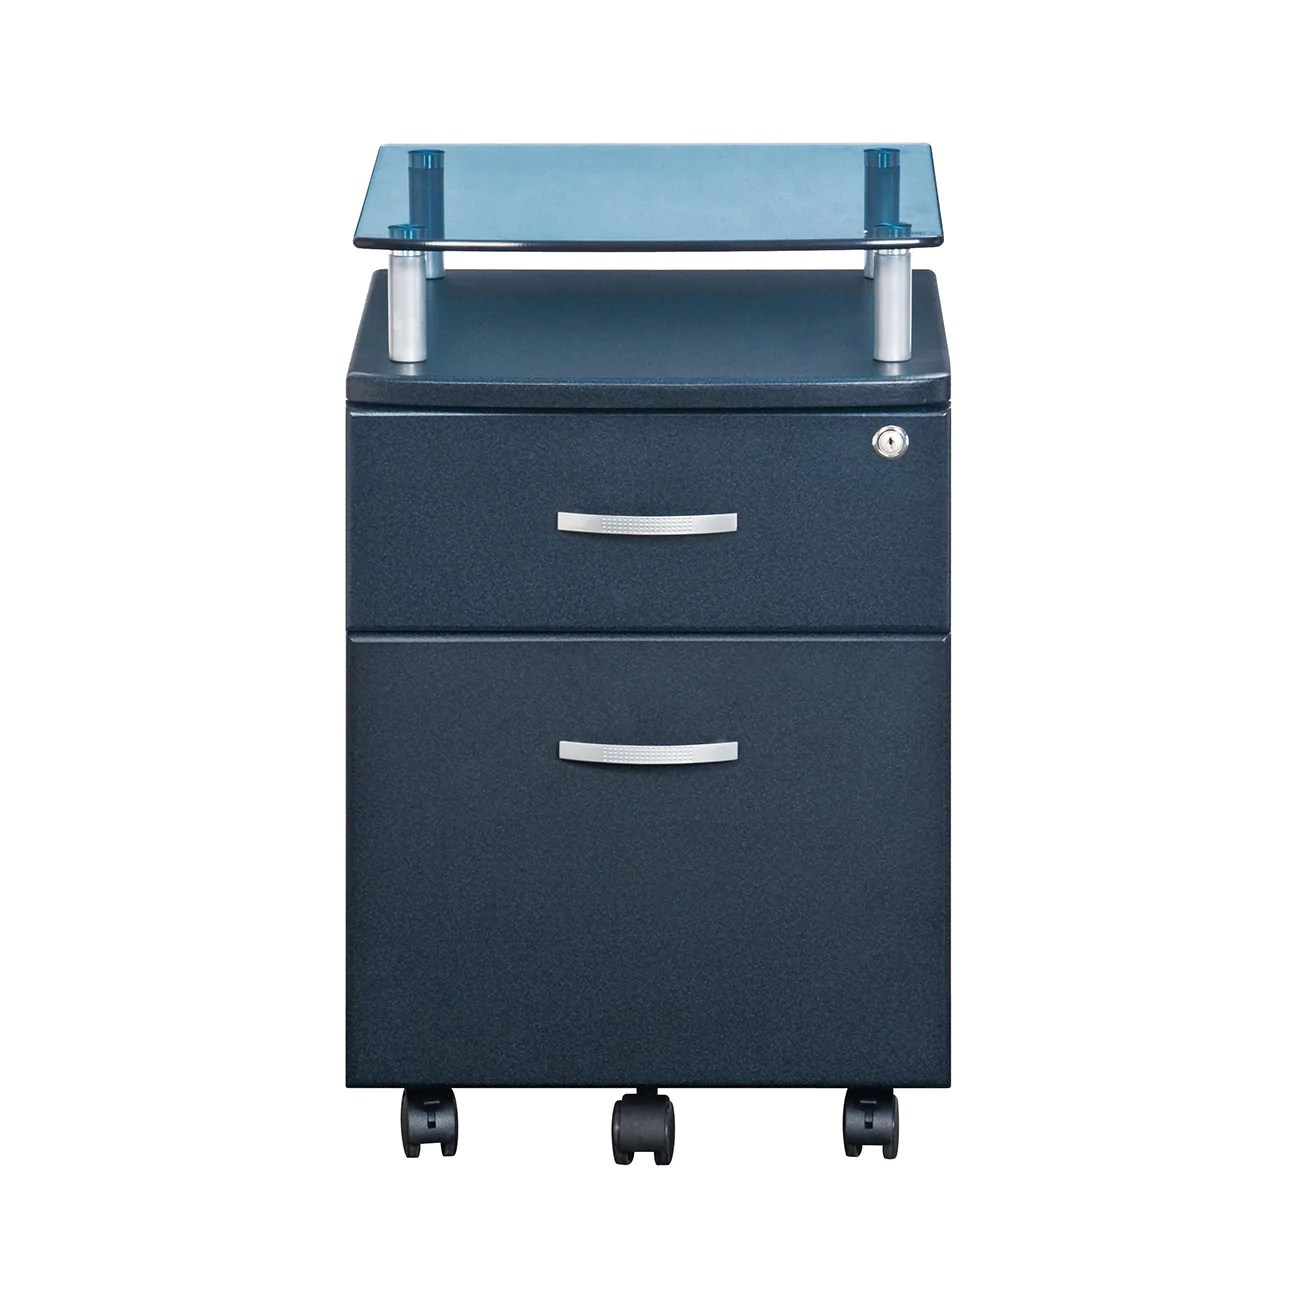 Picturesque Glass Rolling File Cabinet Glass Techni Mobili Rolling File Cabinet Plastic Rolling File Cabinet Wood Rolling File Cabinet houzz 01 Rolling File Cabinet